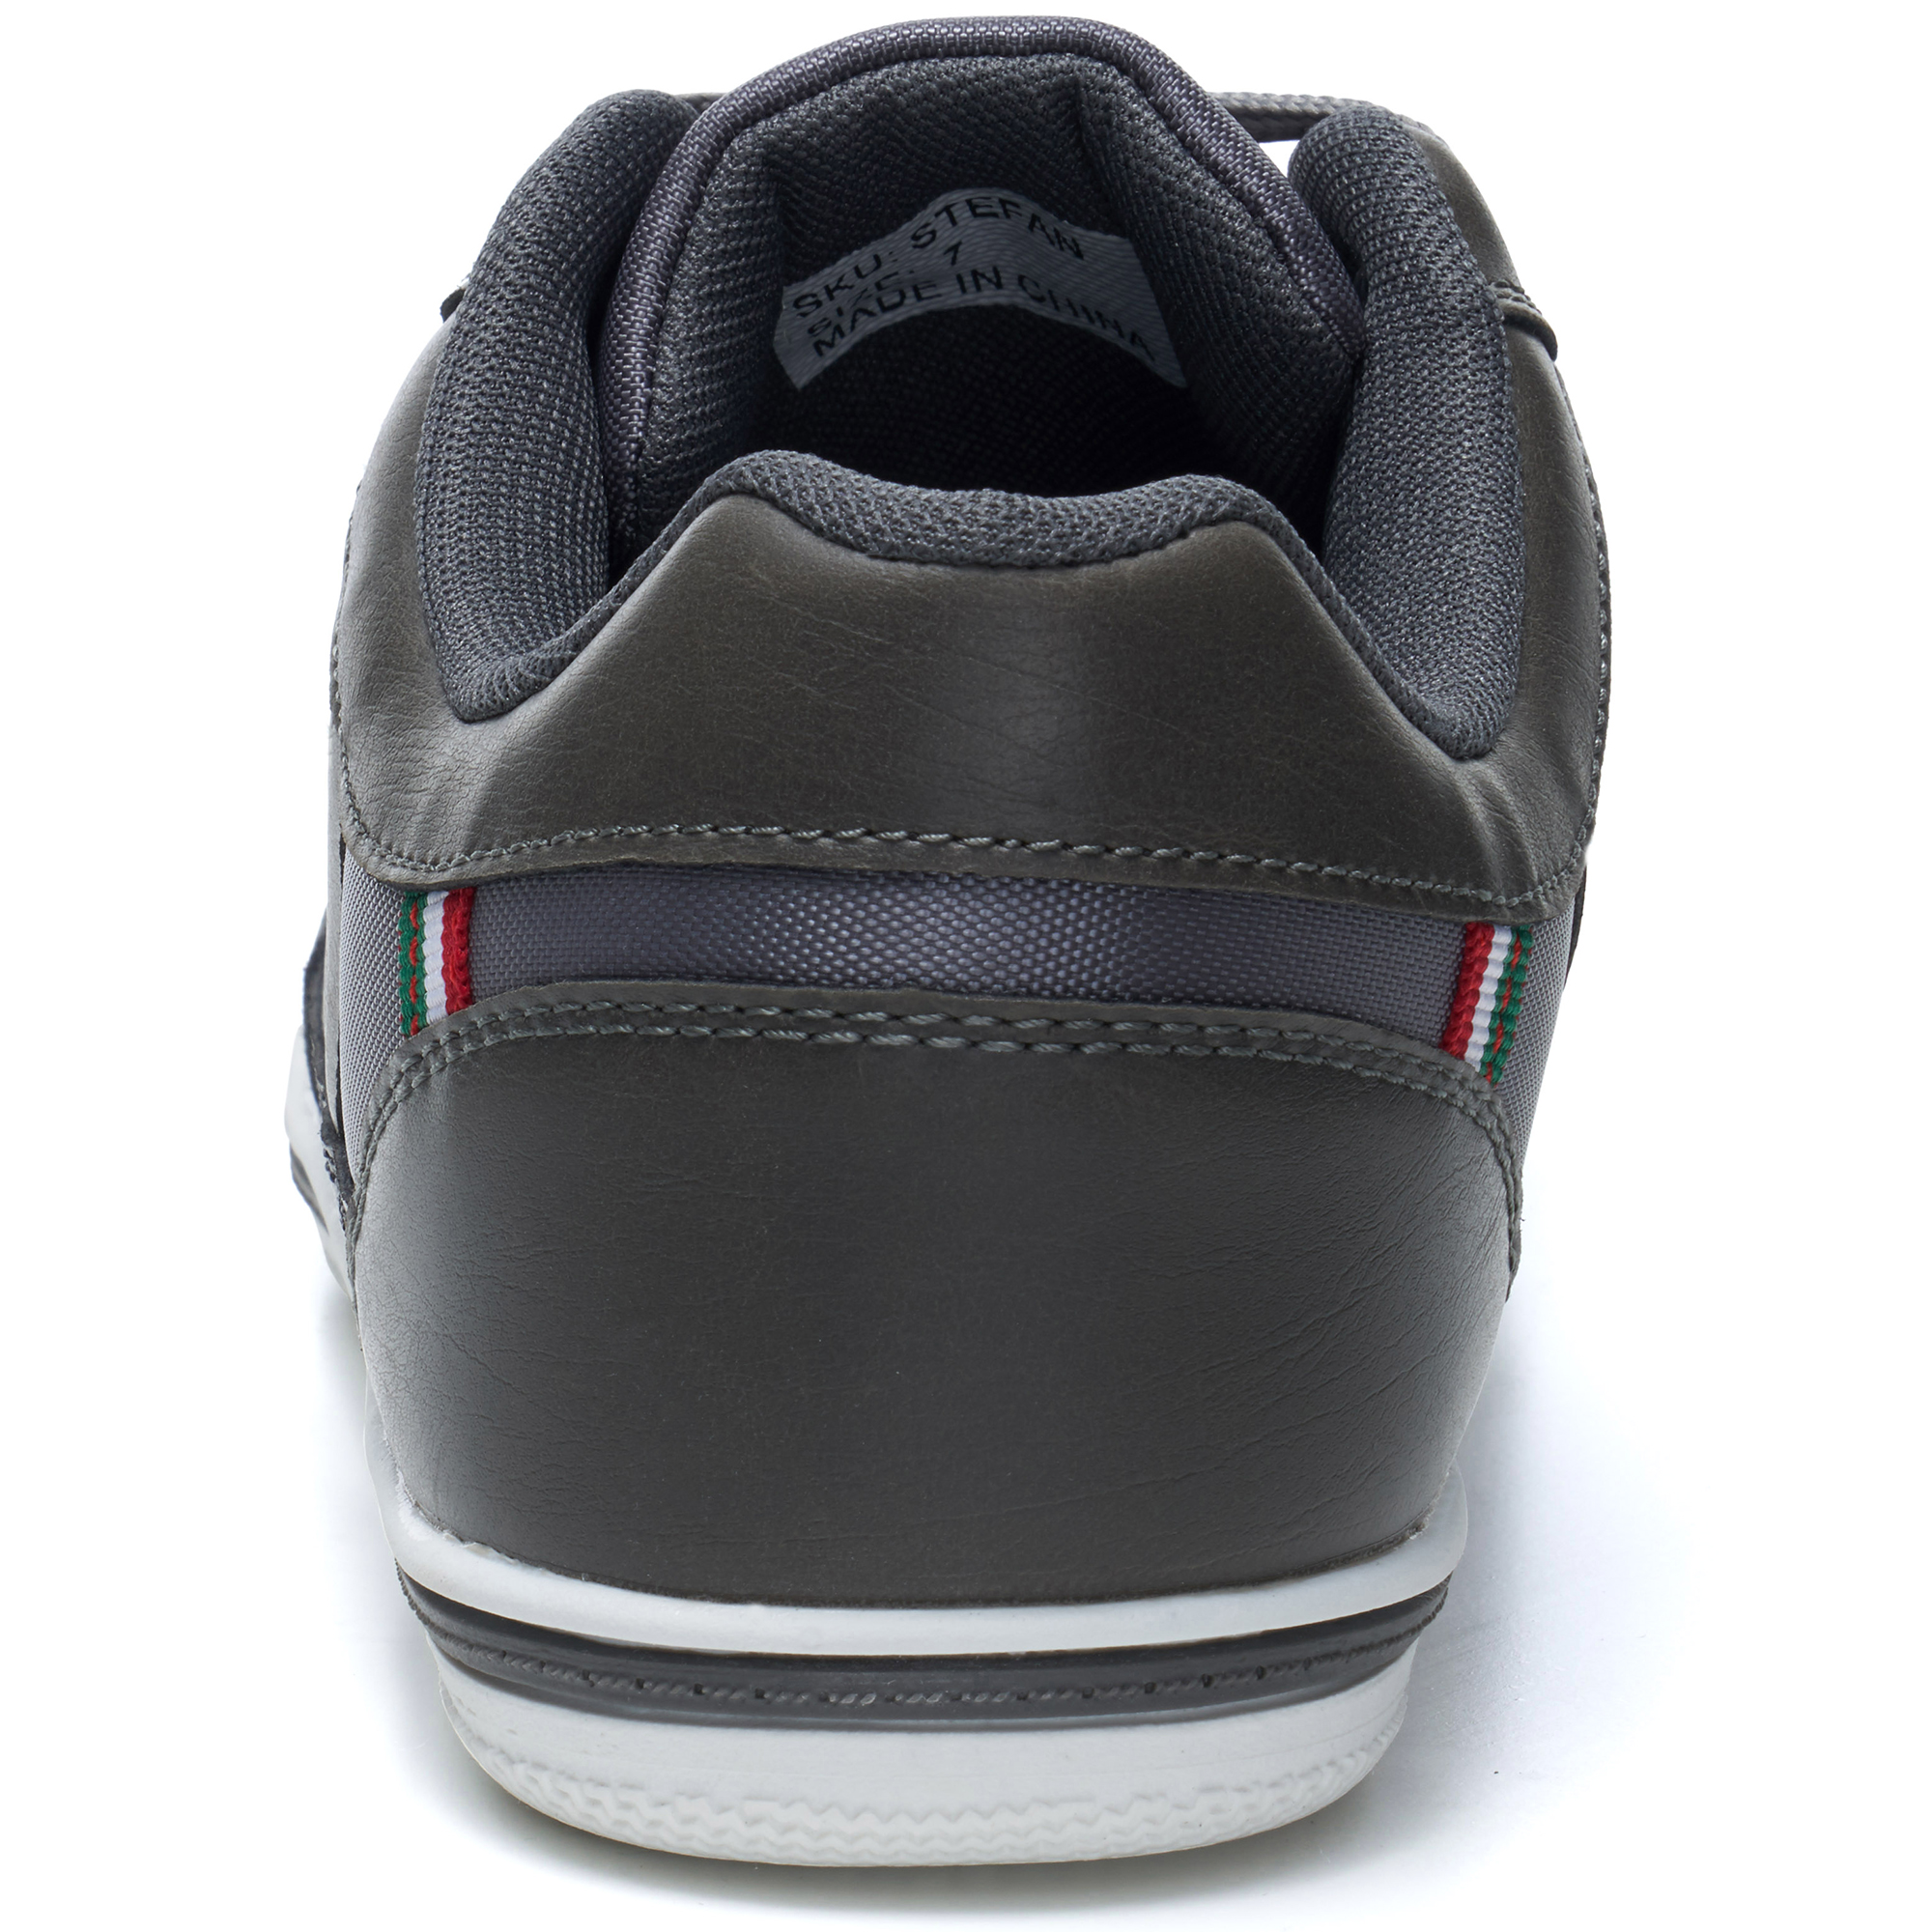 Alpine-Swiss-Stefan-Mens-Retro-Fashion-Sneakers-Tennis-Shoes-Casual-Athletic-New thumbnail 25